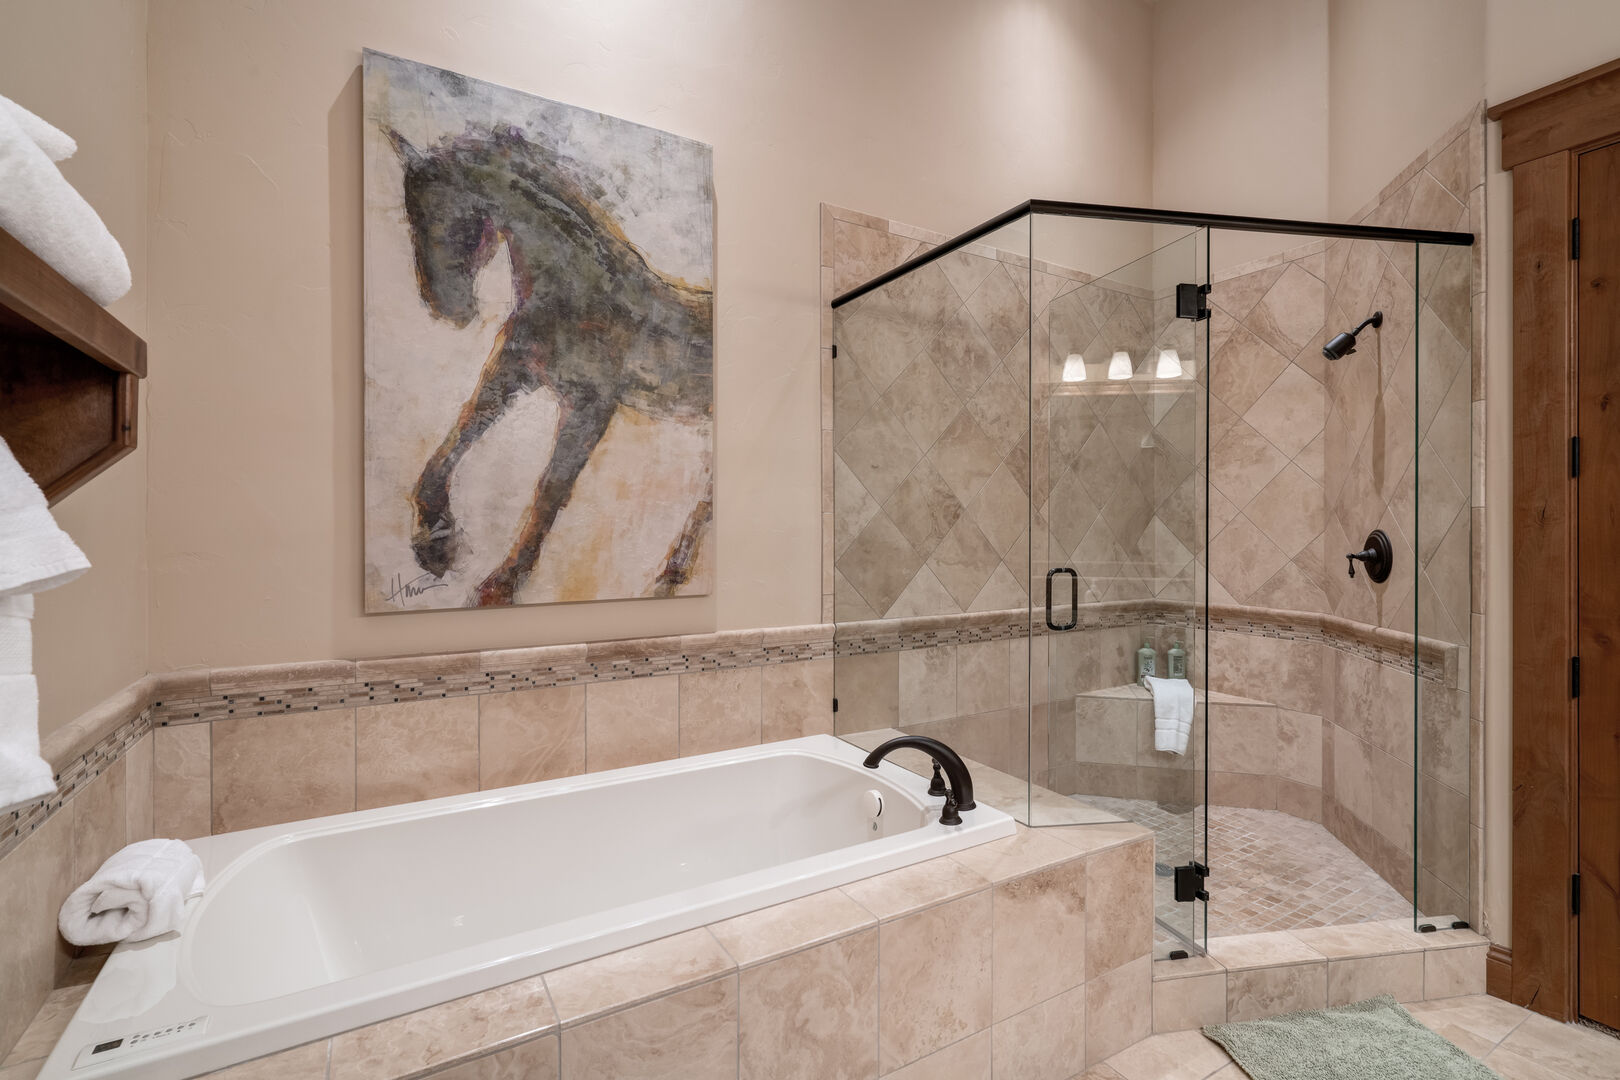 Large separate shower and soaking tub